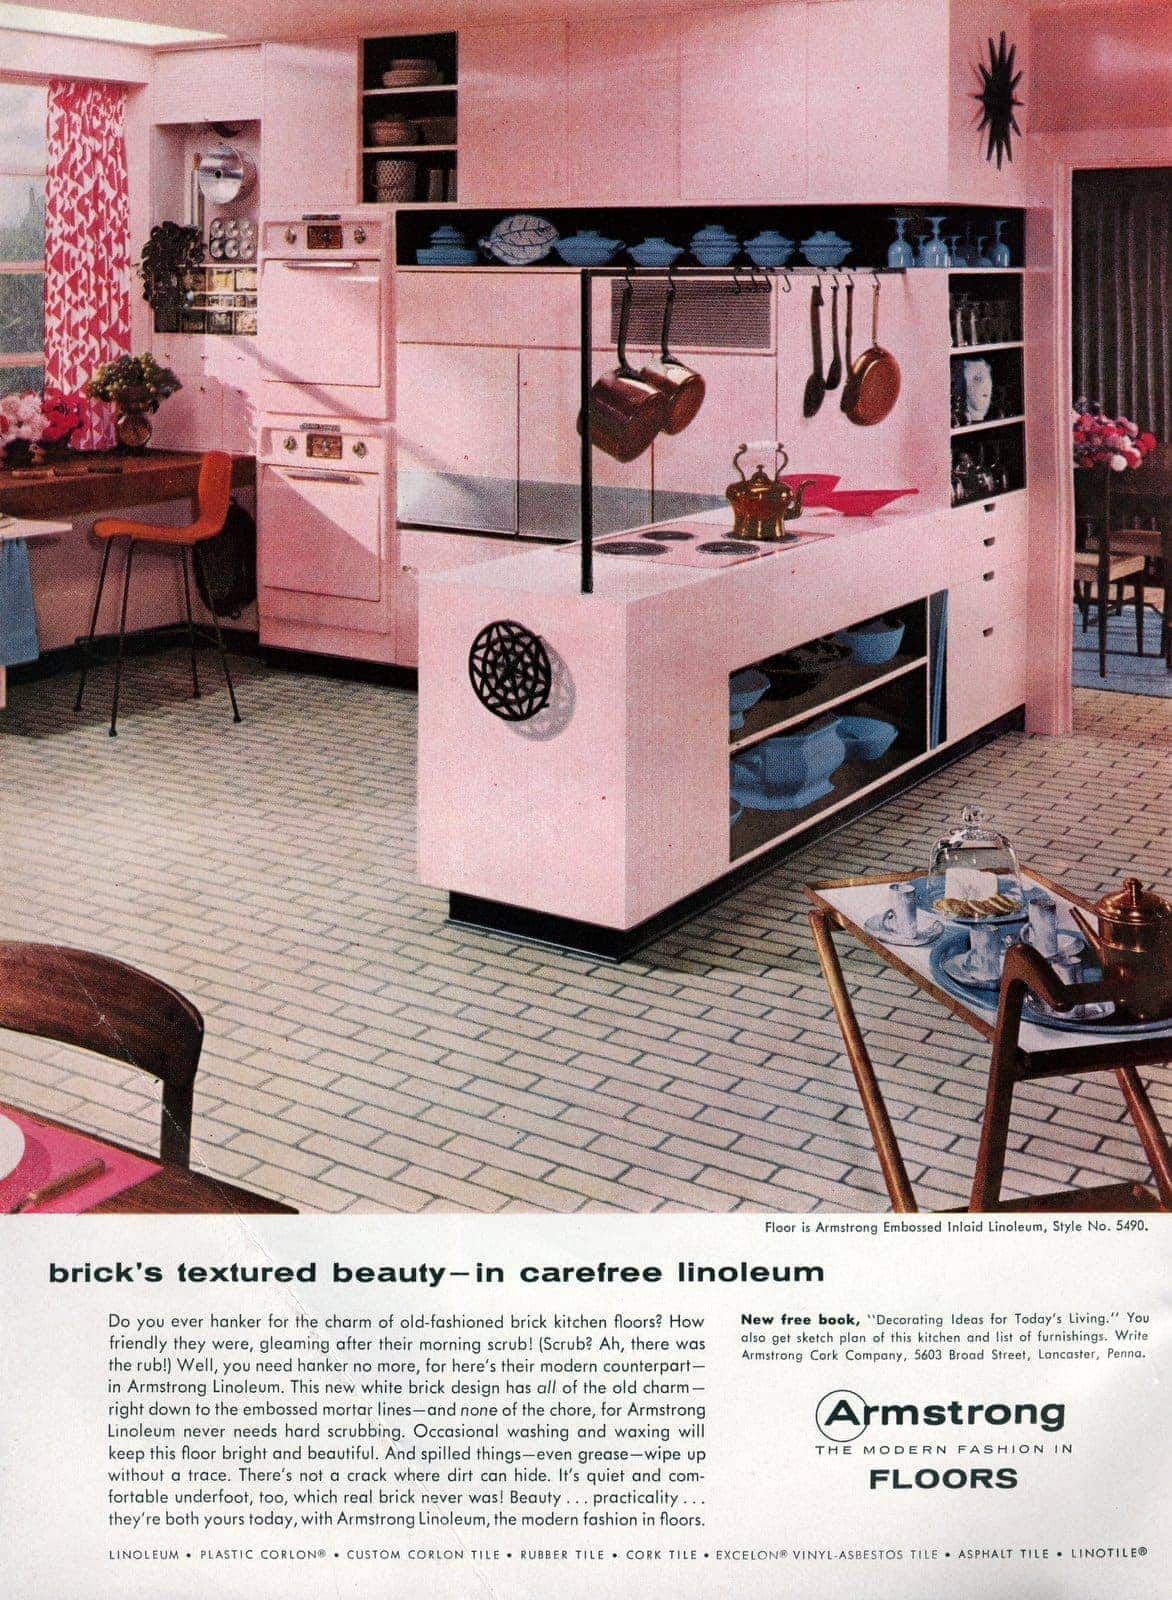 kitchen linoleum christmas decorating ideas for the a white brick floor your pink why not it was fifties 1956